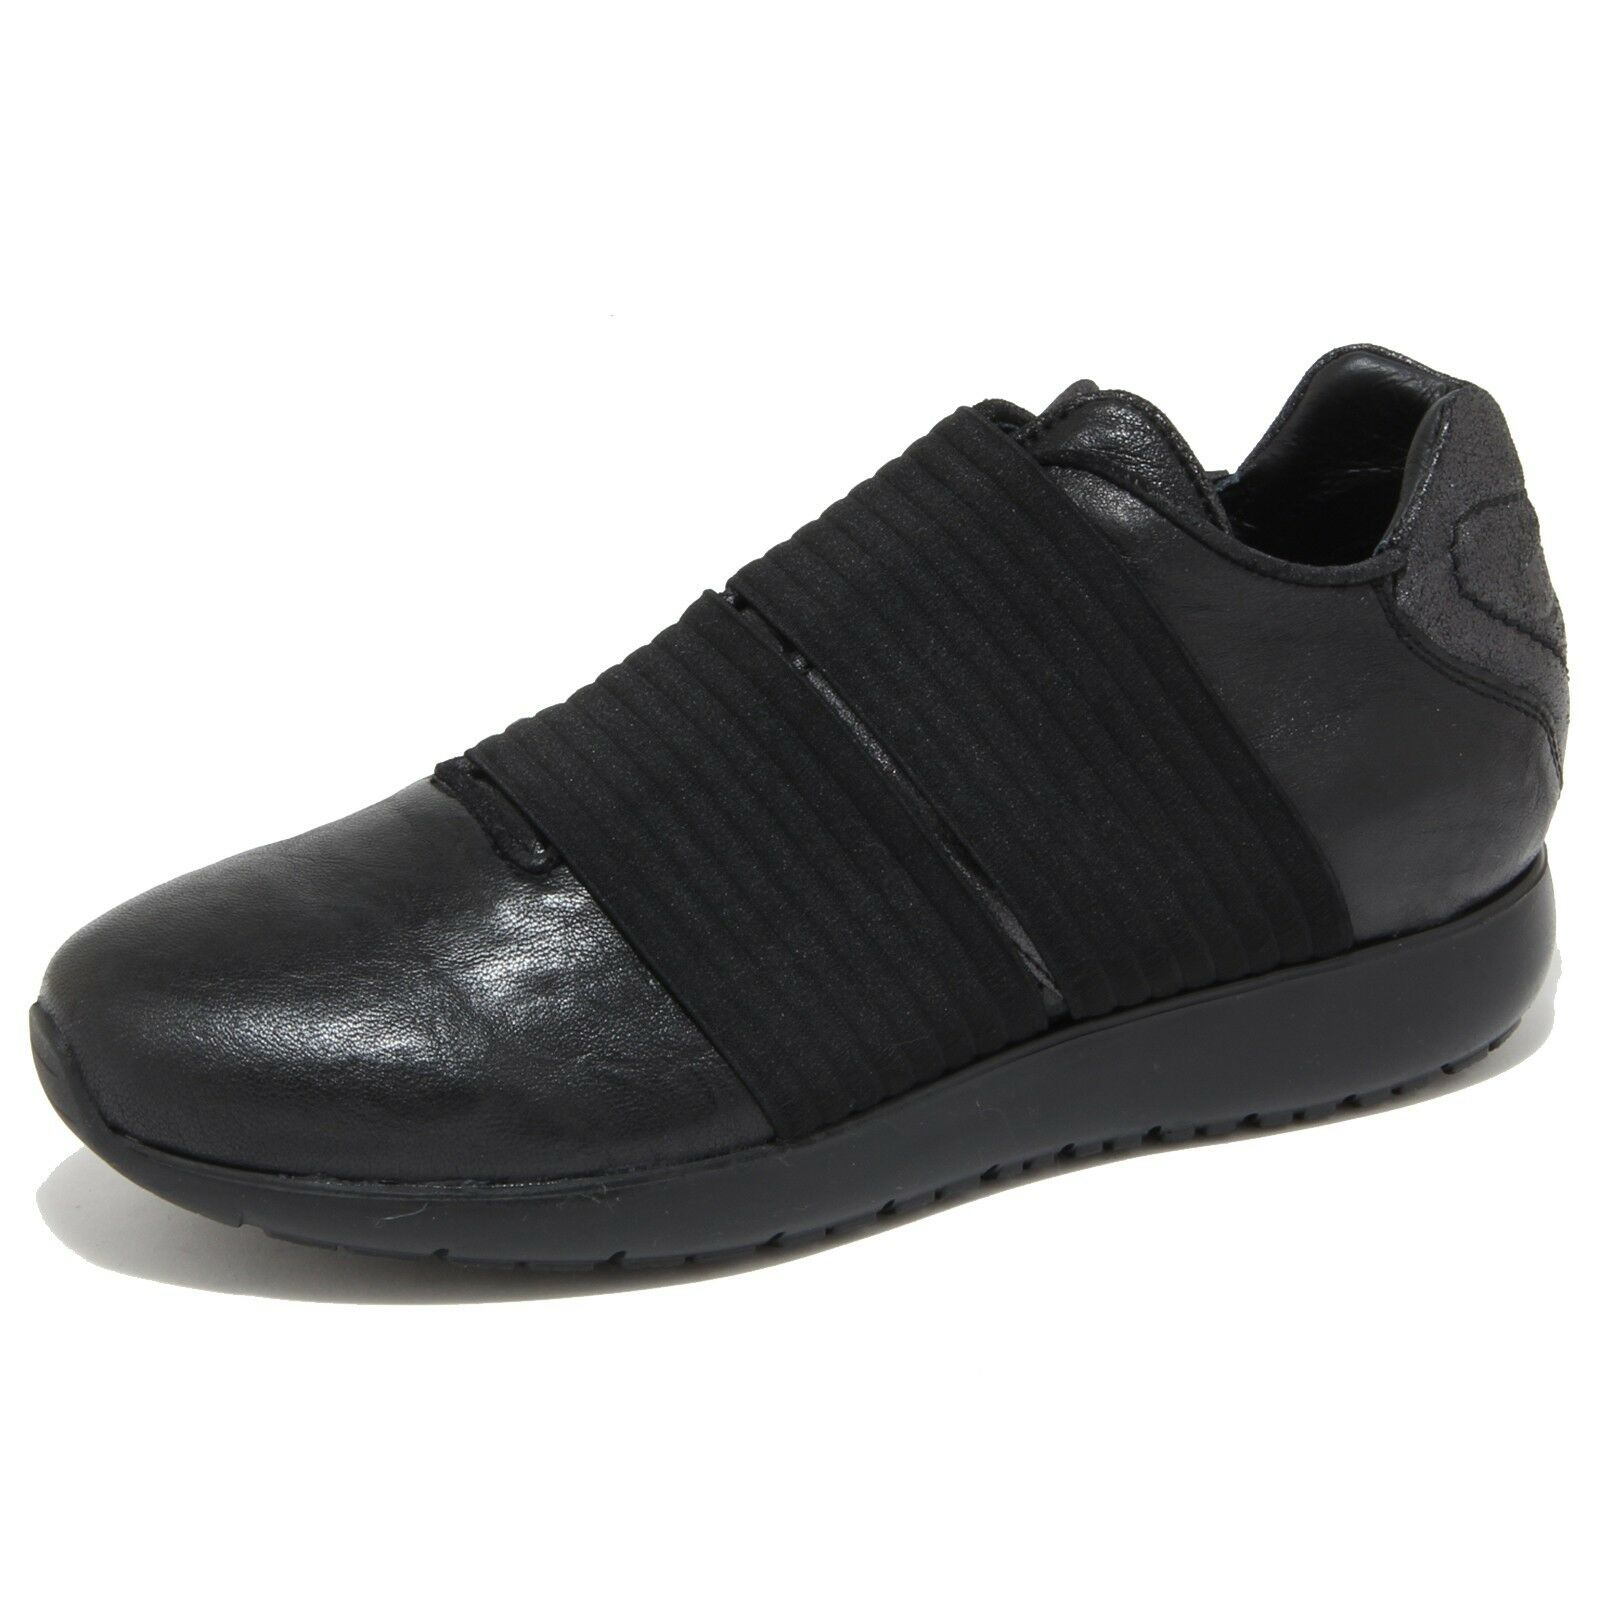 4670N Basket s s s   ANDIA FORA running pelle nero Chaussure s Femme | Outlet Online  b9898f